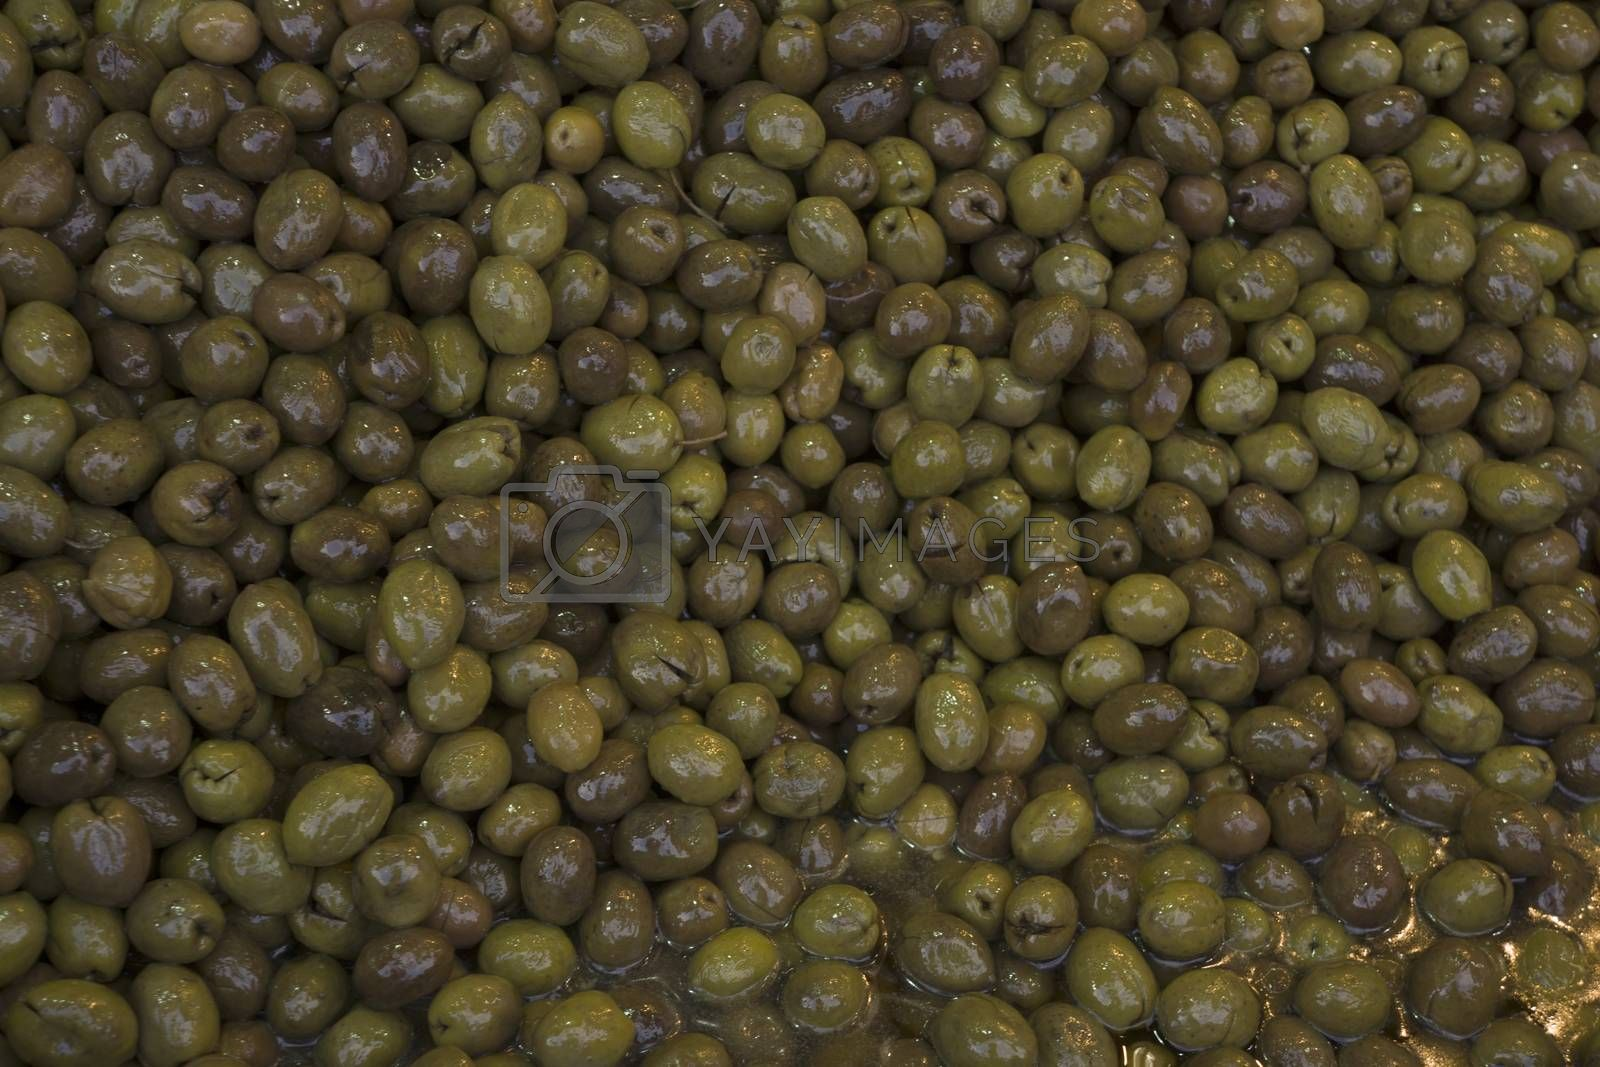 Royalty free image of Olives by photosil